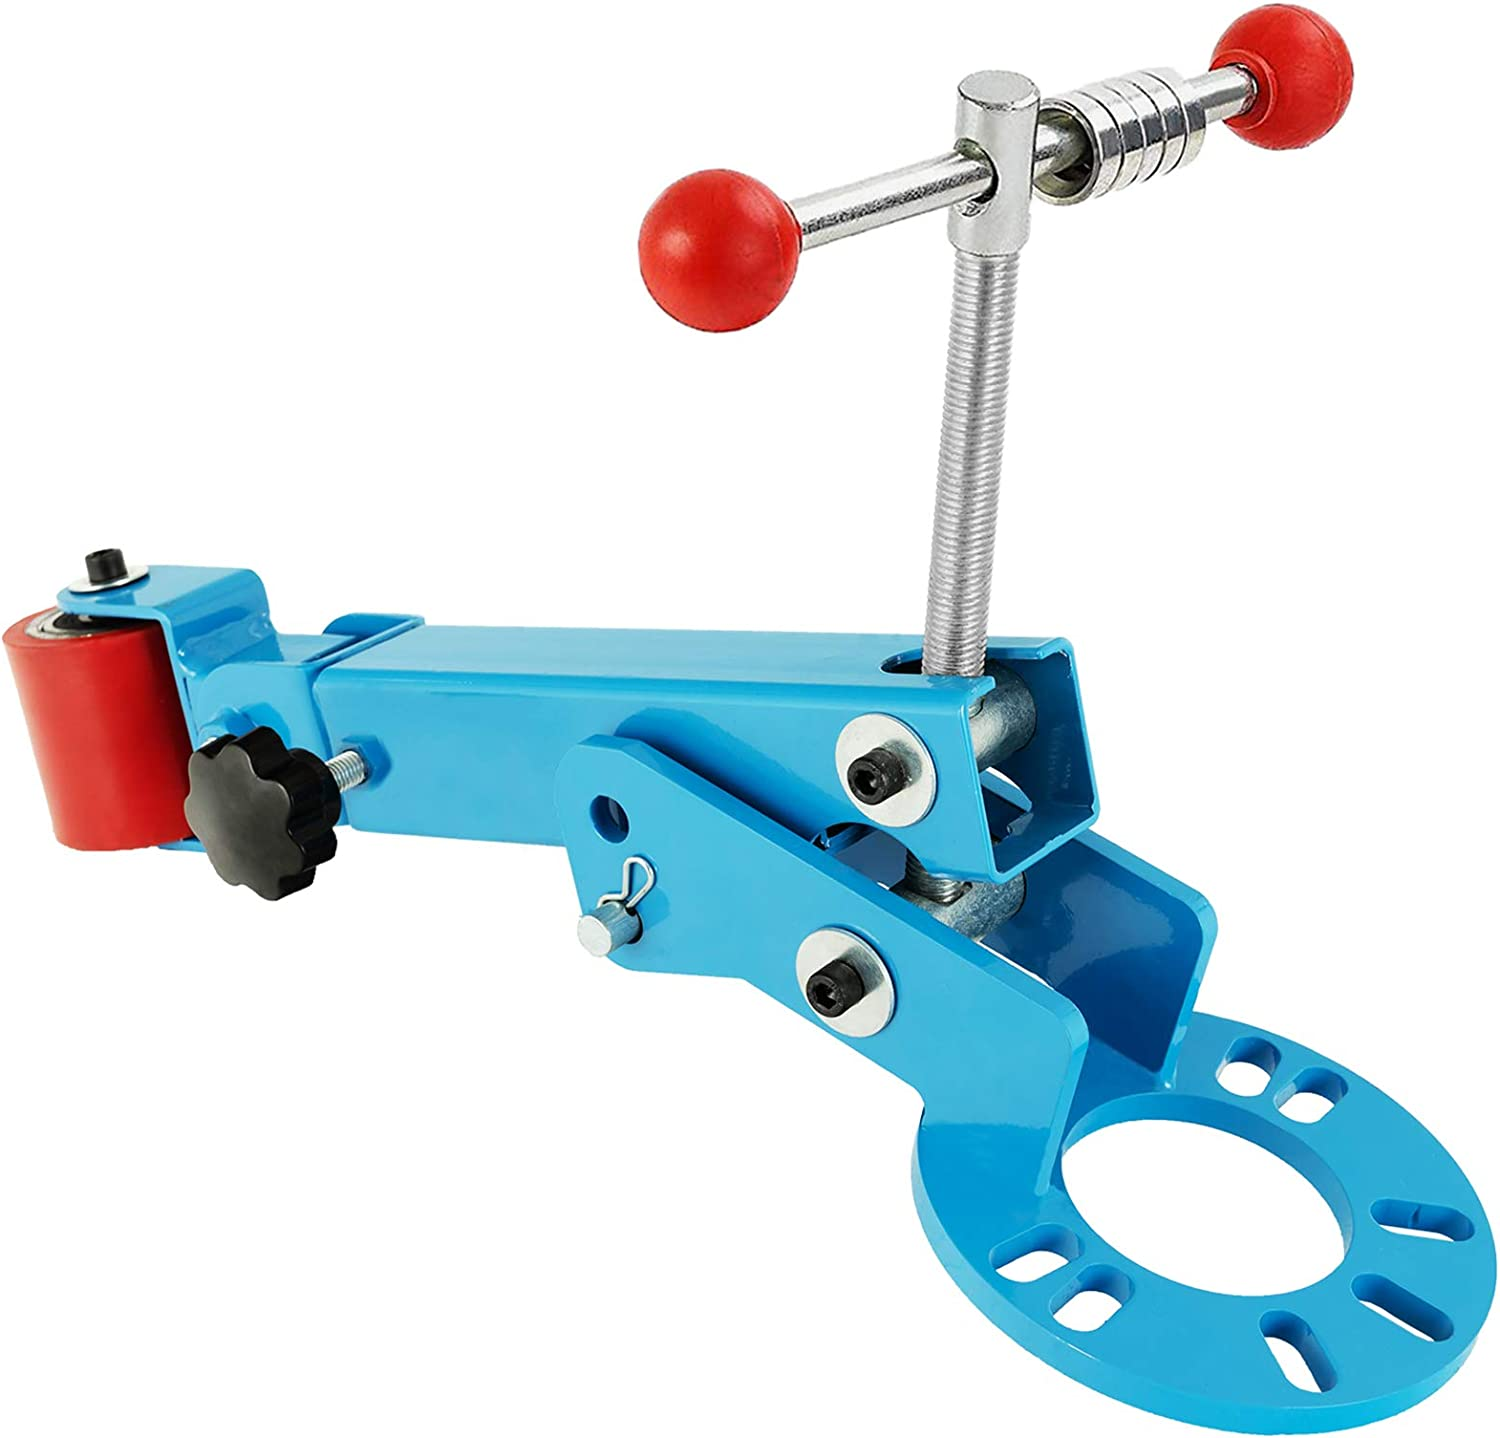 SUNCOO Fender Roller Tool Reforming Extending Auto Body Wheel Arch Lip Rolling Flaring Former Remove Tire Rub Heavy Duty Coated Steel Blue